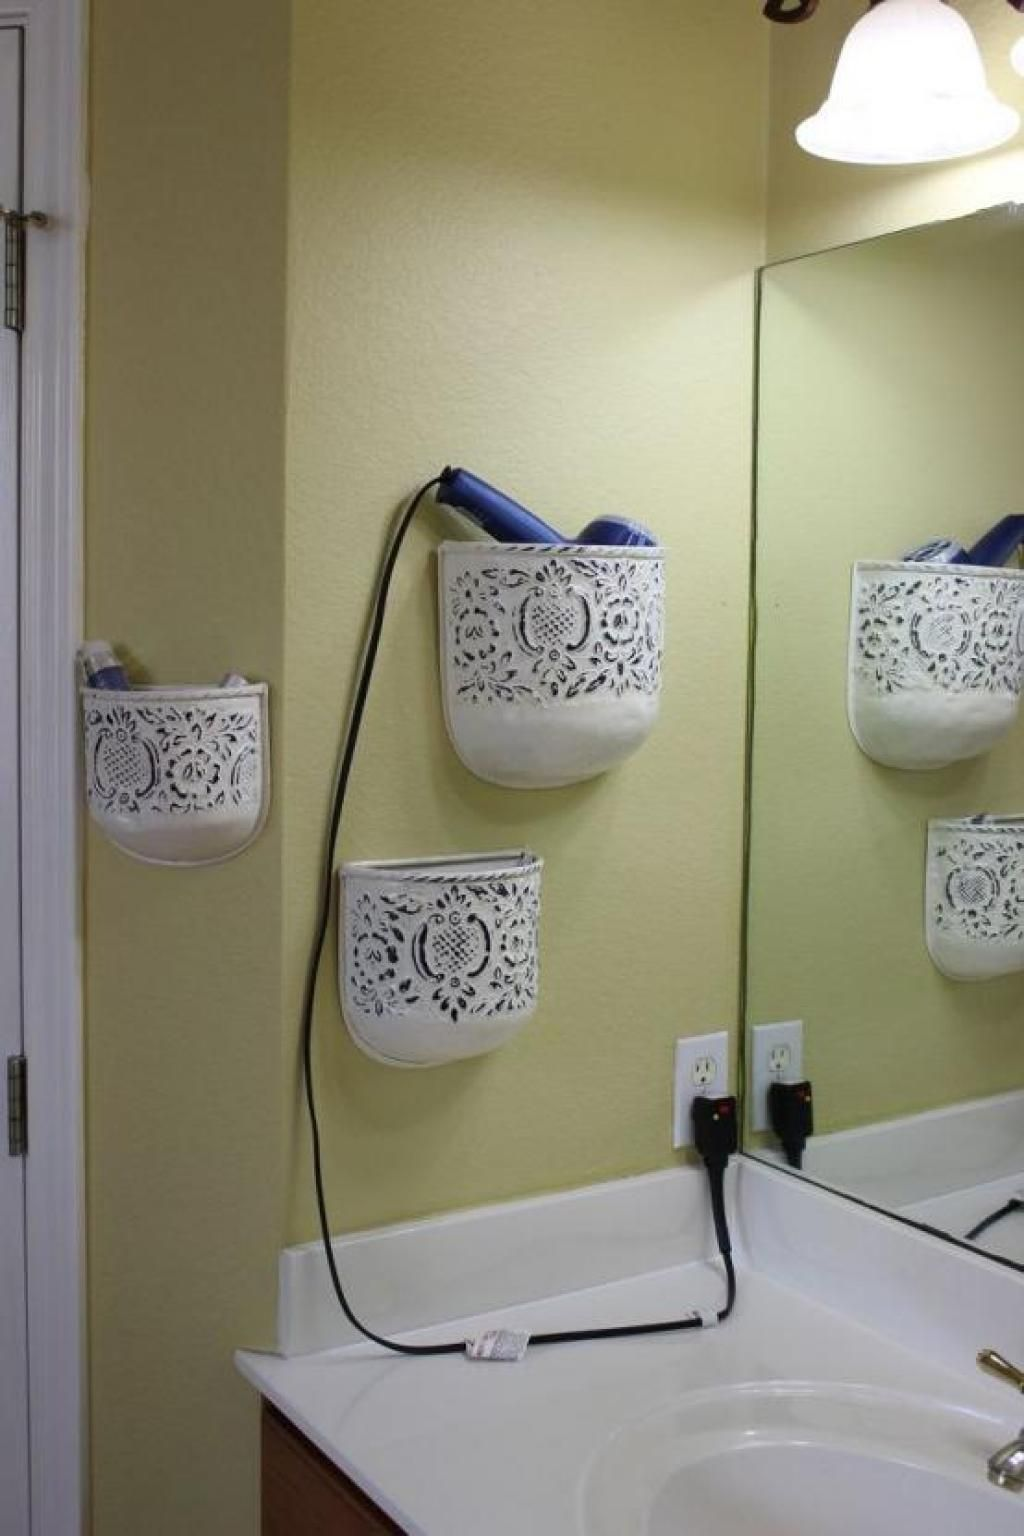 Bathroom Tile Design Tool New Practical Bathroom Storage Ideas Hair Dryer Storage And Bathroom Decorating Inspiration